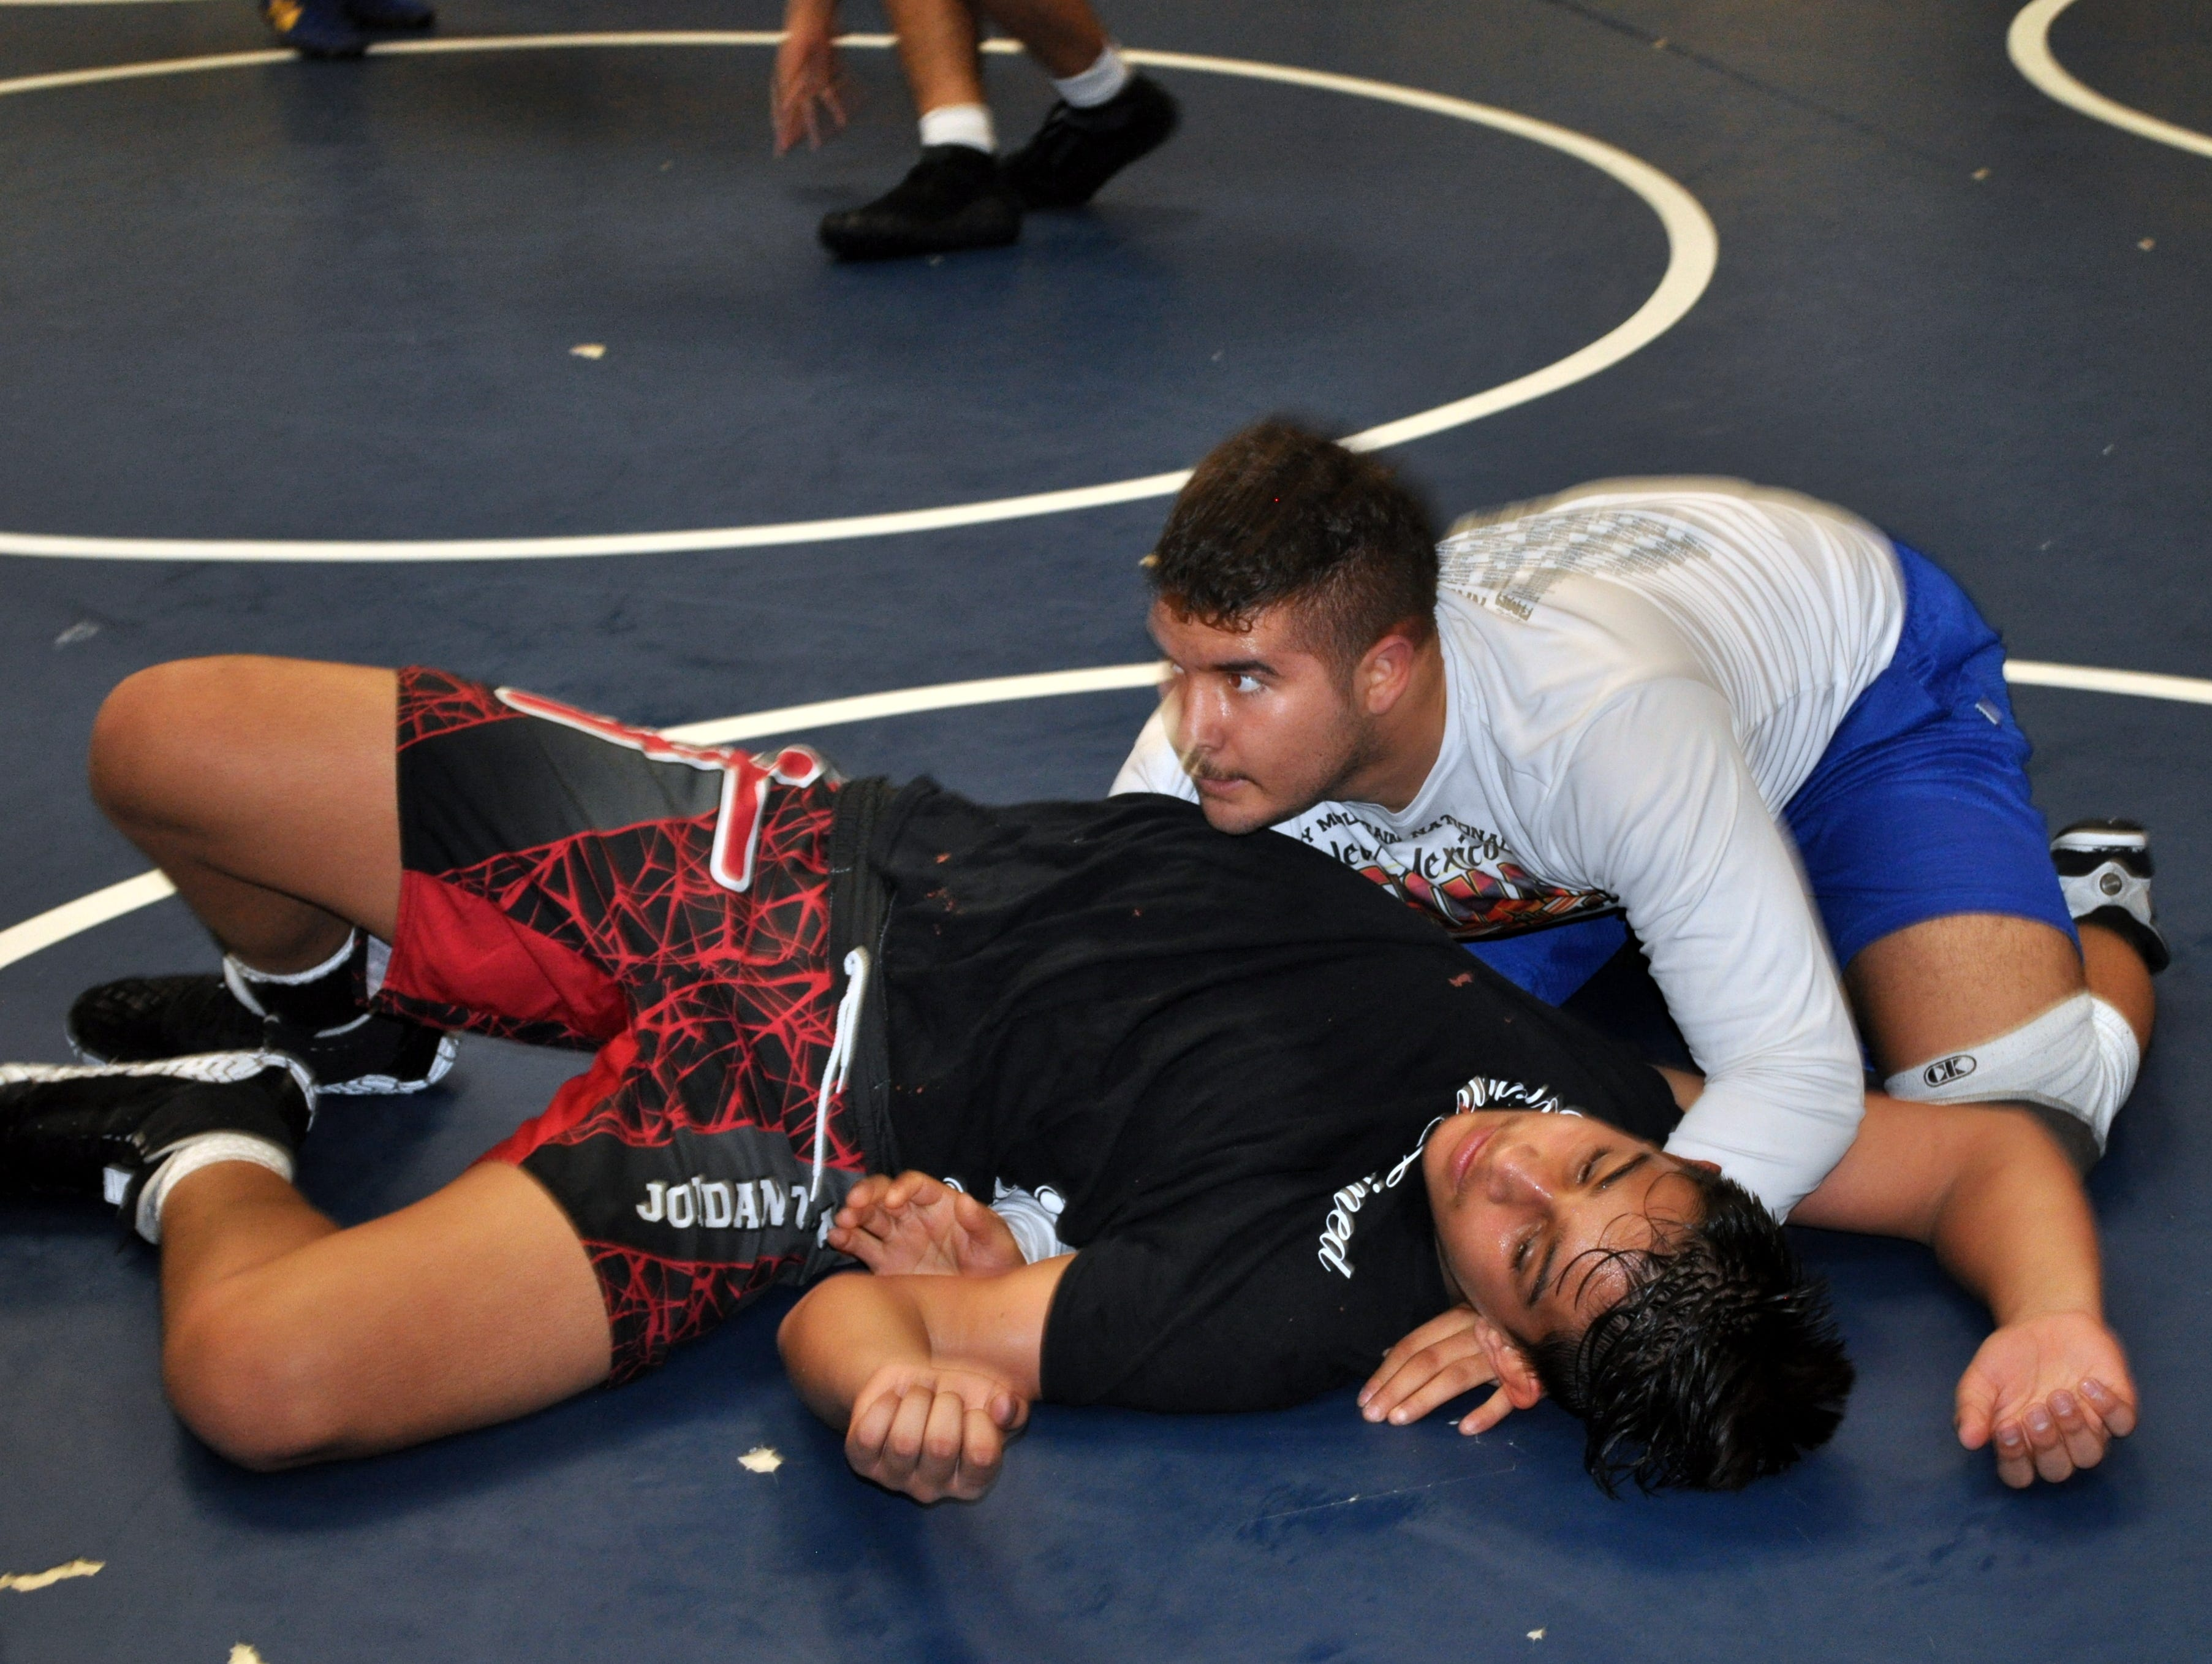 RJ Baca (top) and Jake Fuentes (bottom) get in mat work during Tuesday's practice.